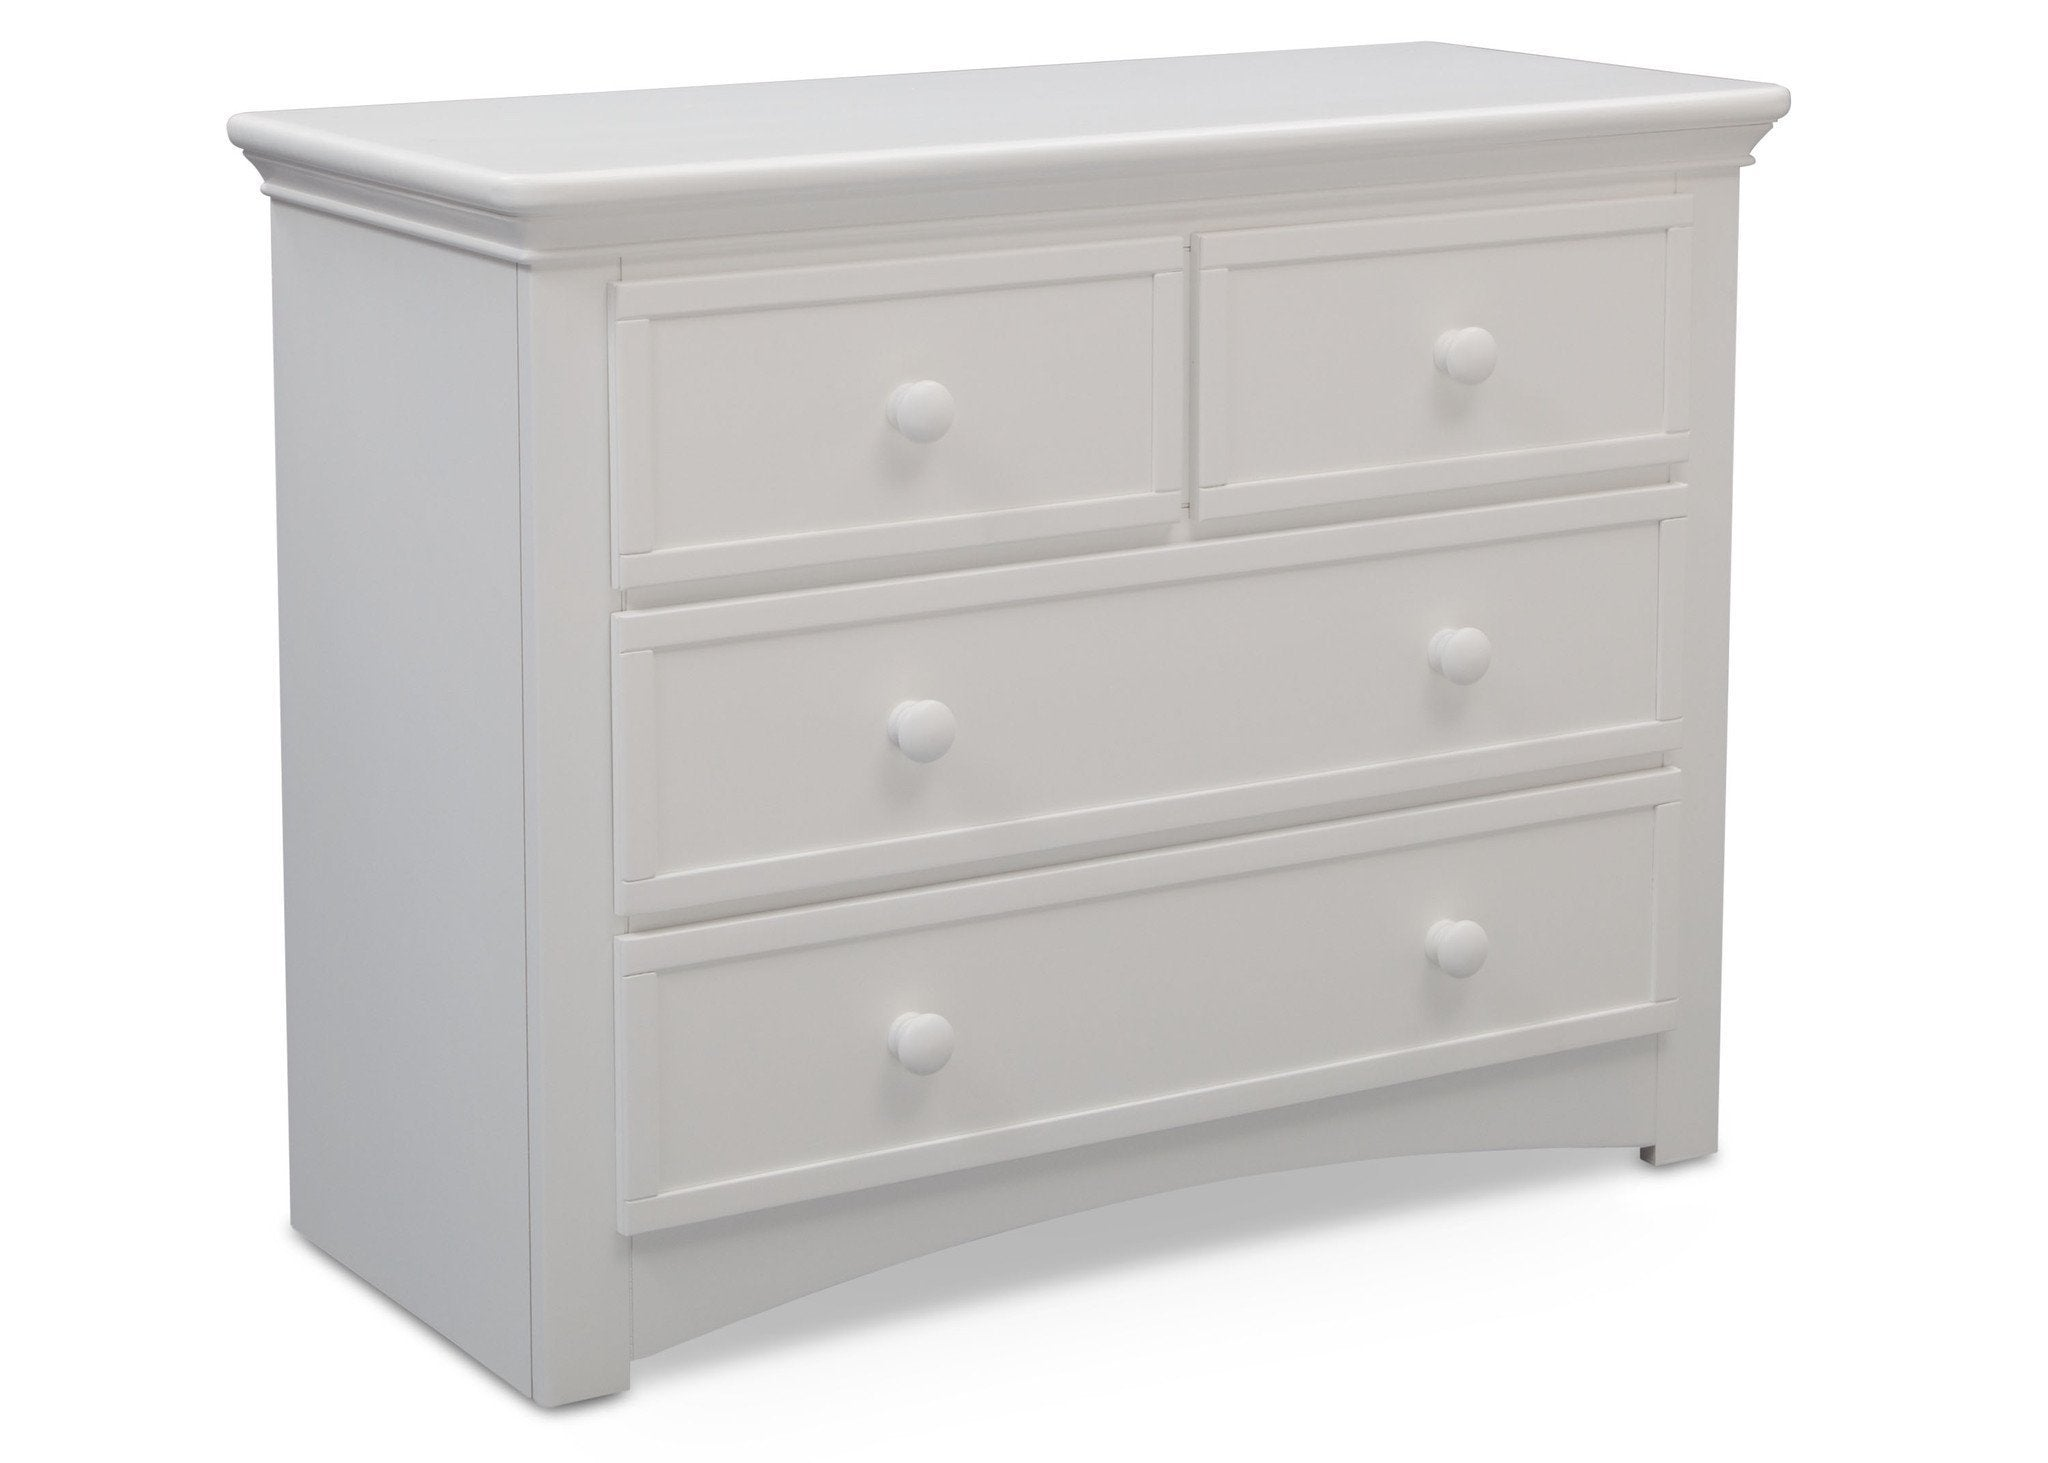 Serta Bianca (130) 4 Drawer Dresser Right Facing View b2b